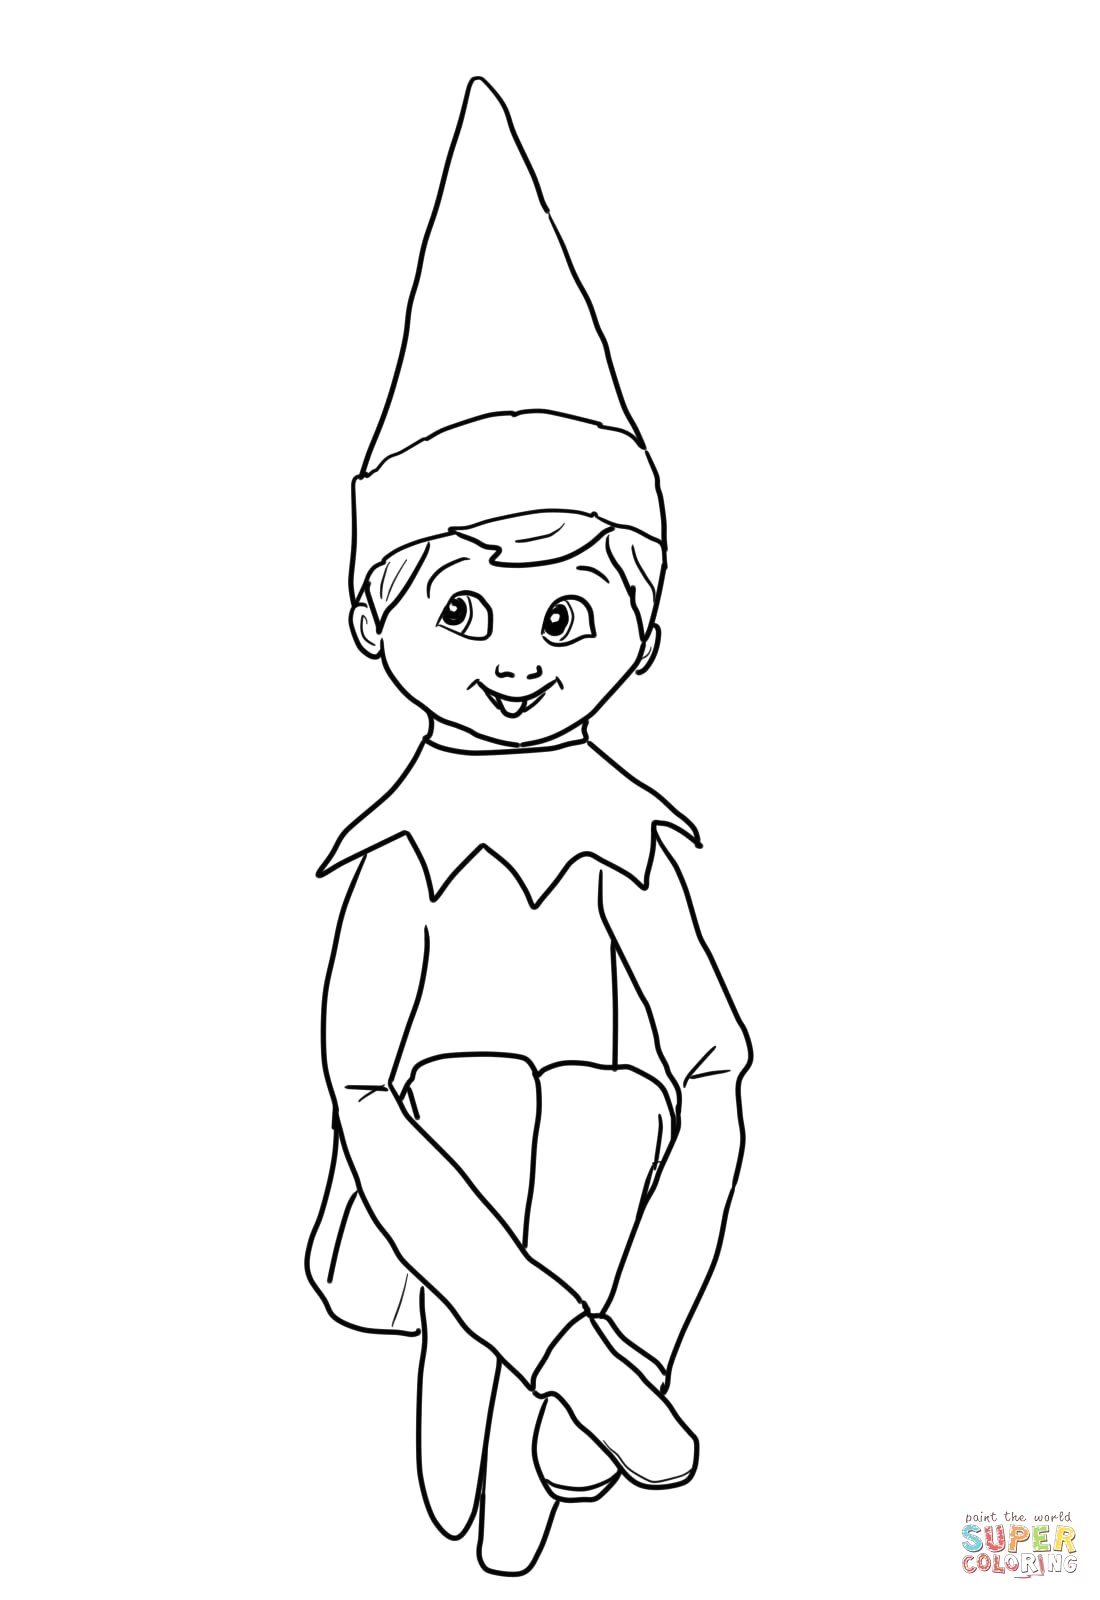 Elf On the Shelf Coloring Pages Girl Pin On Lenny the Elf